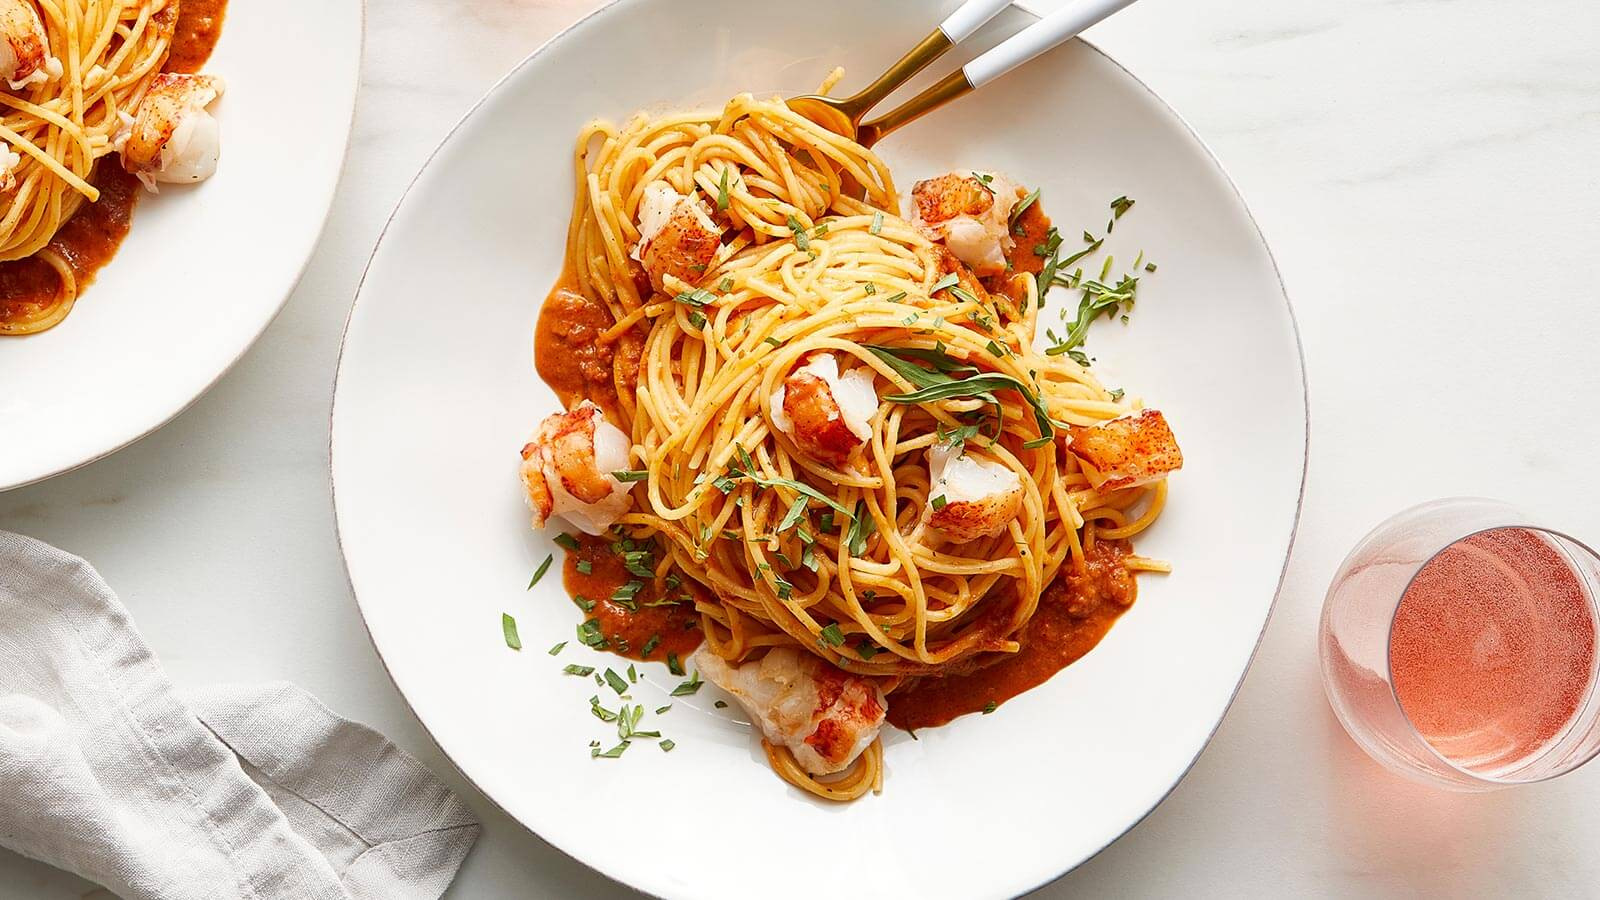 Lobster Pasta with Pink Pesto Sauce